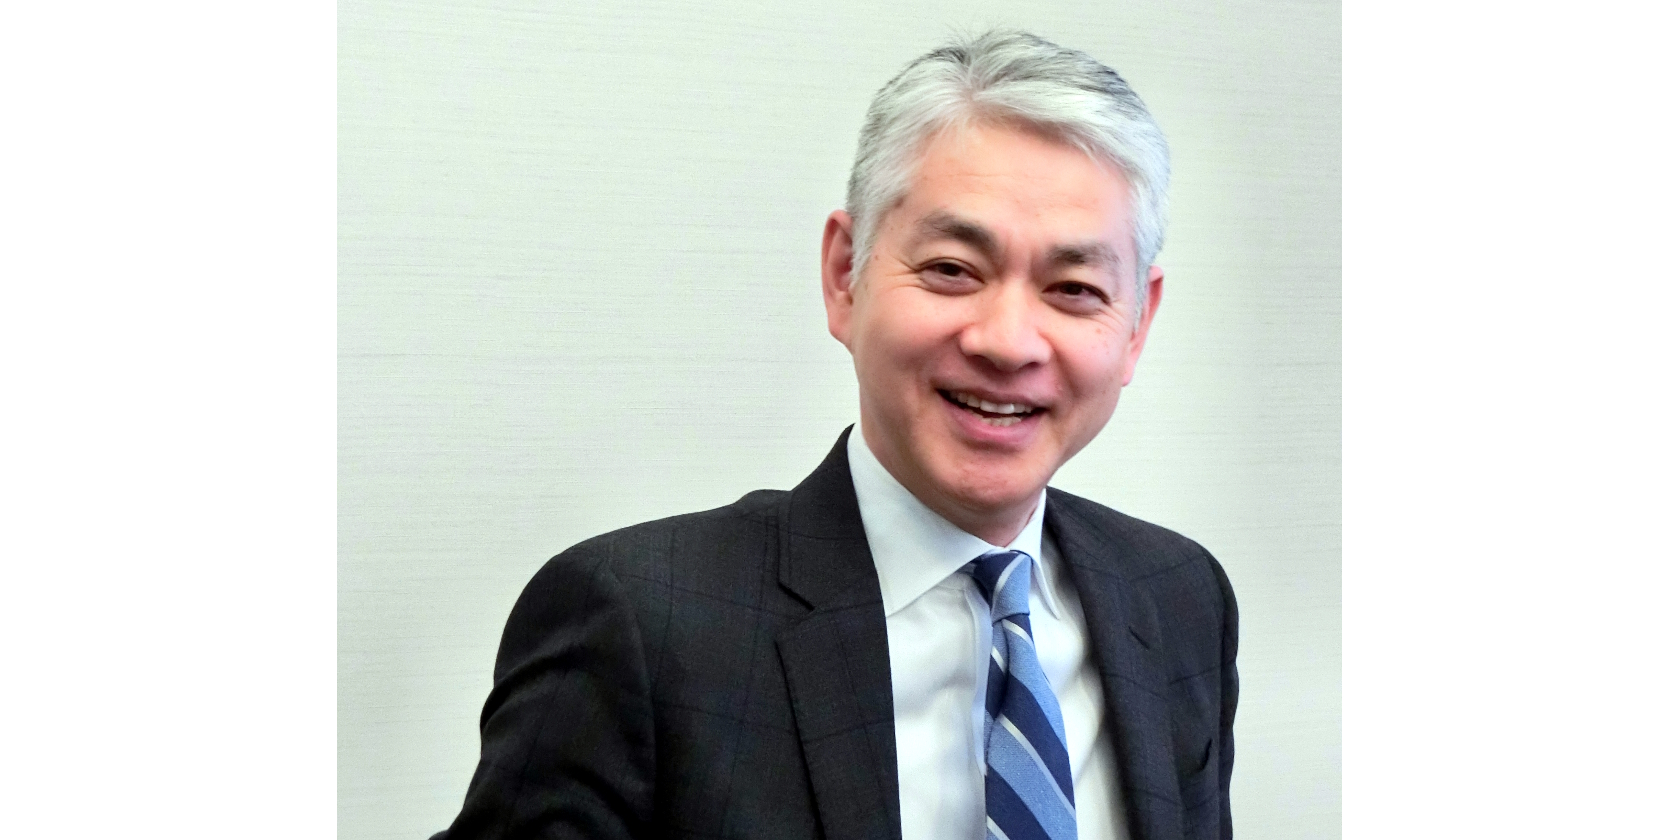 Interview: Pfizer Japan President Akihisa Harada Talks Business, New Drug Developments